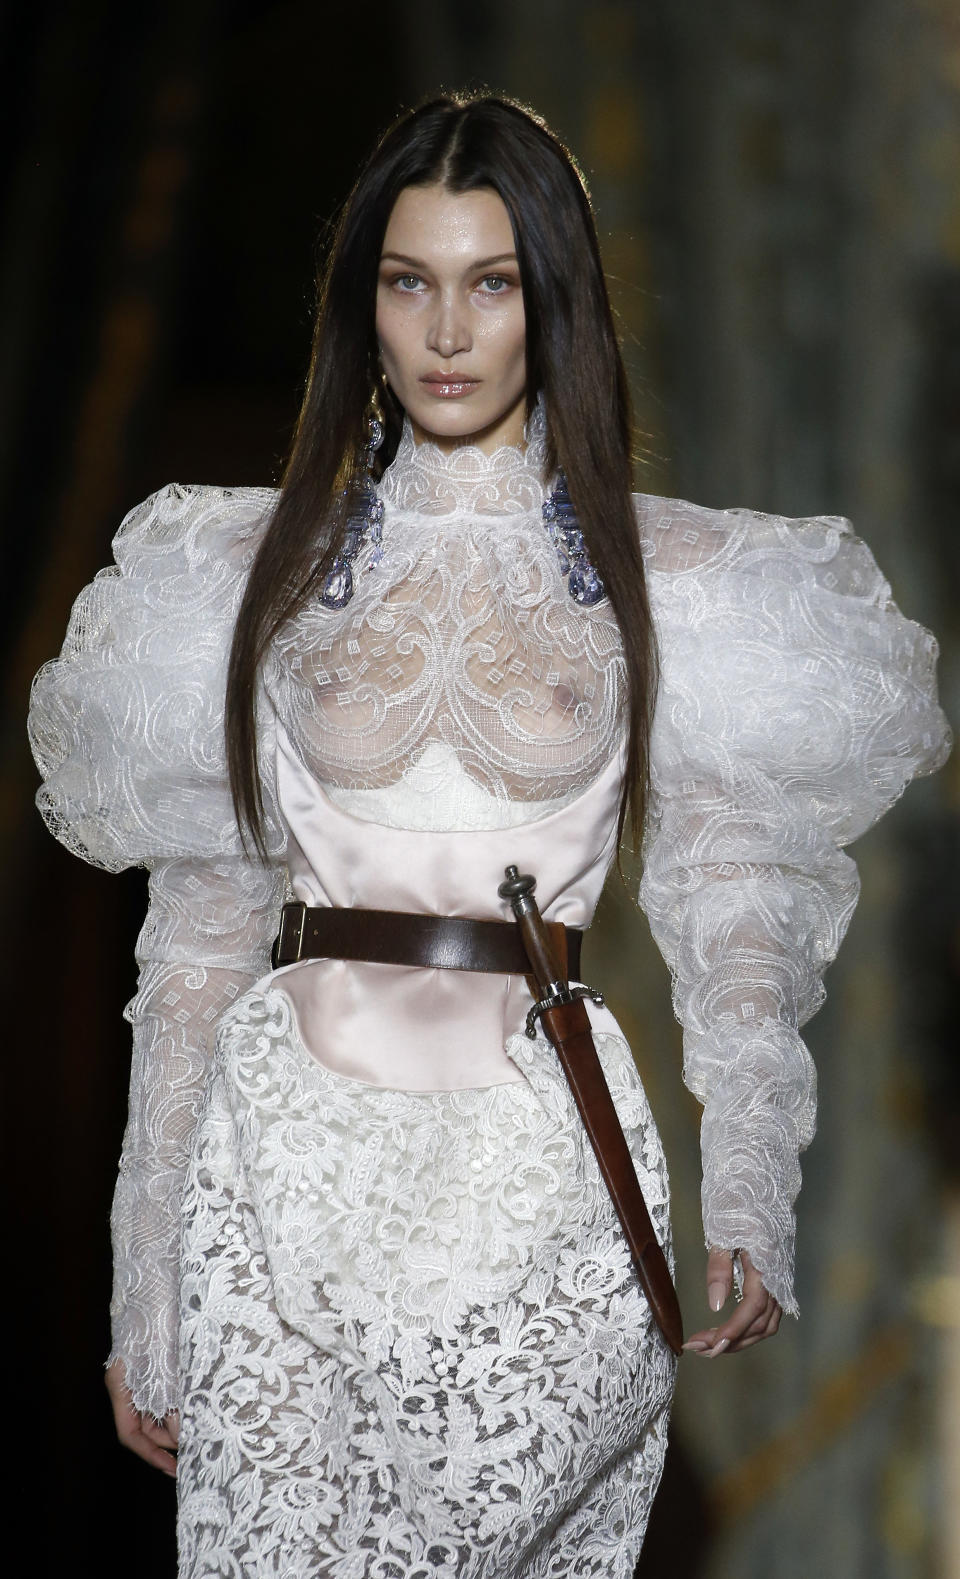 US model Bella Hadid model walks the runway during the Vivienne Westwood show as part of the Paris Fashion Week Womenswear Fall/Winter 2020/2021 on February 29, 2020 in Paris, France.